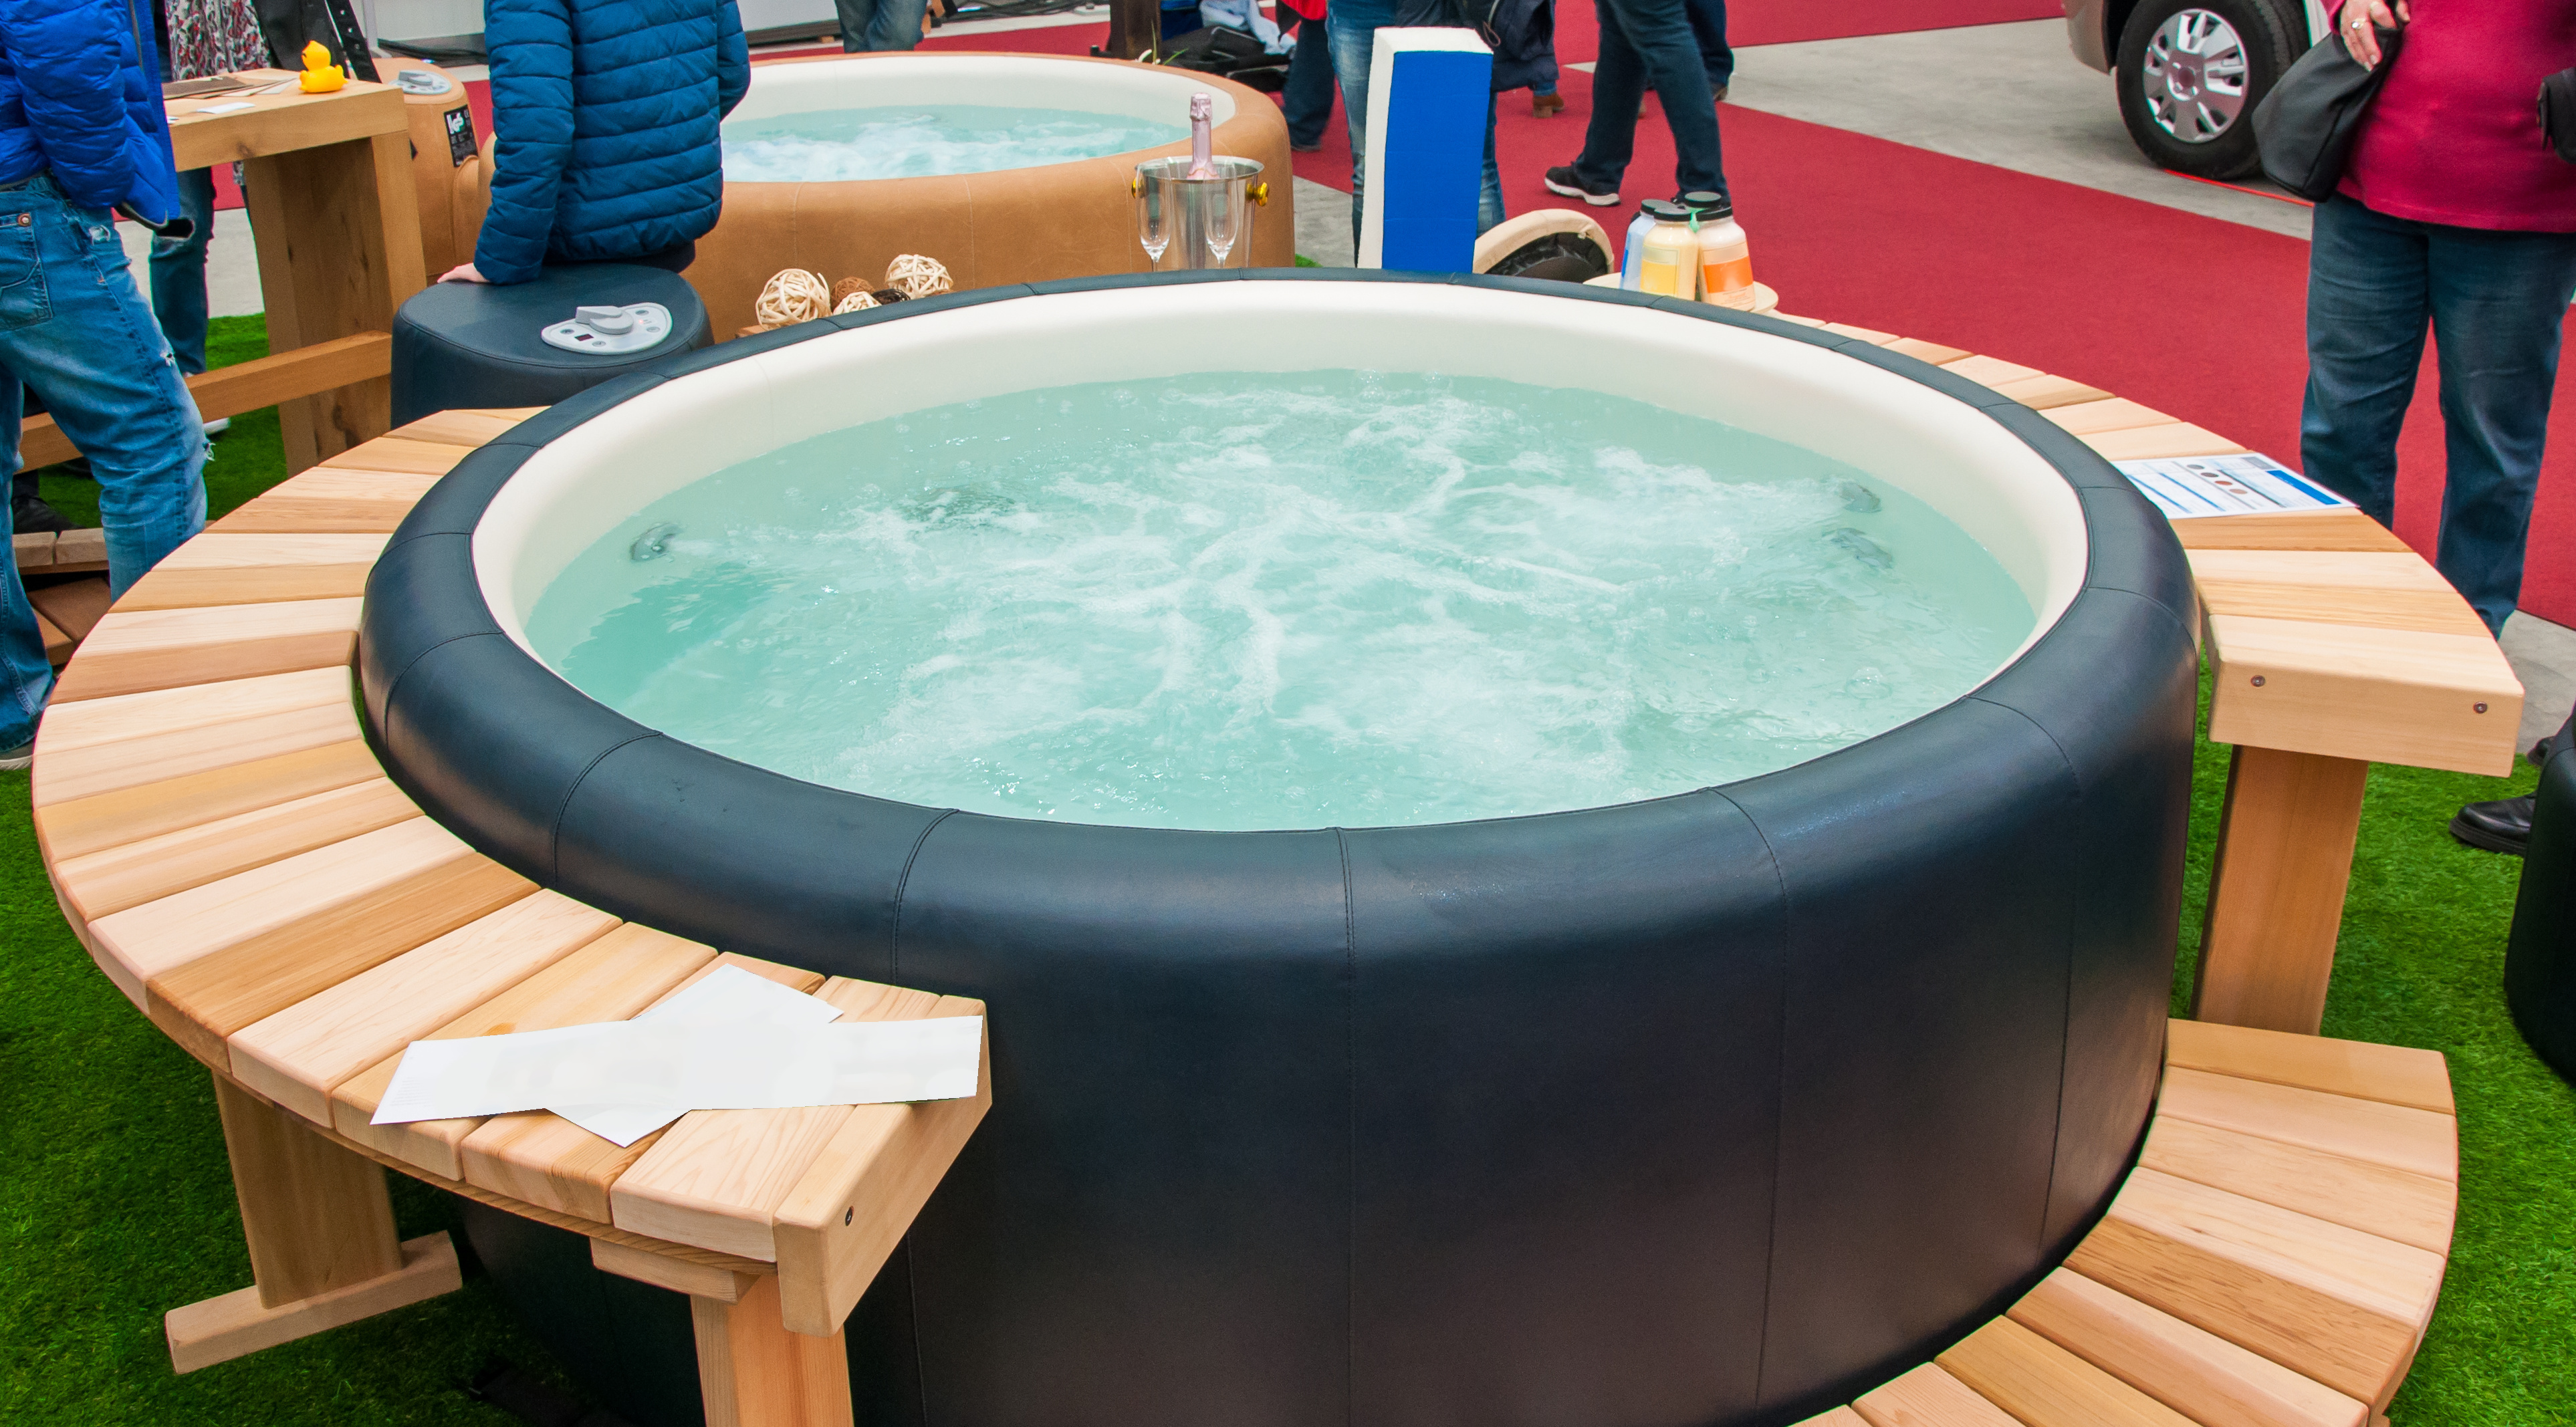 How to clean mold off of a hot tub cover